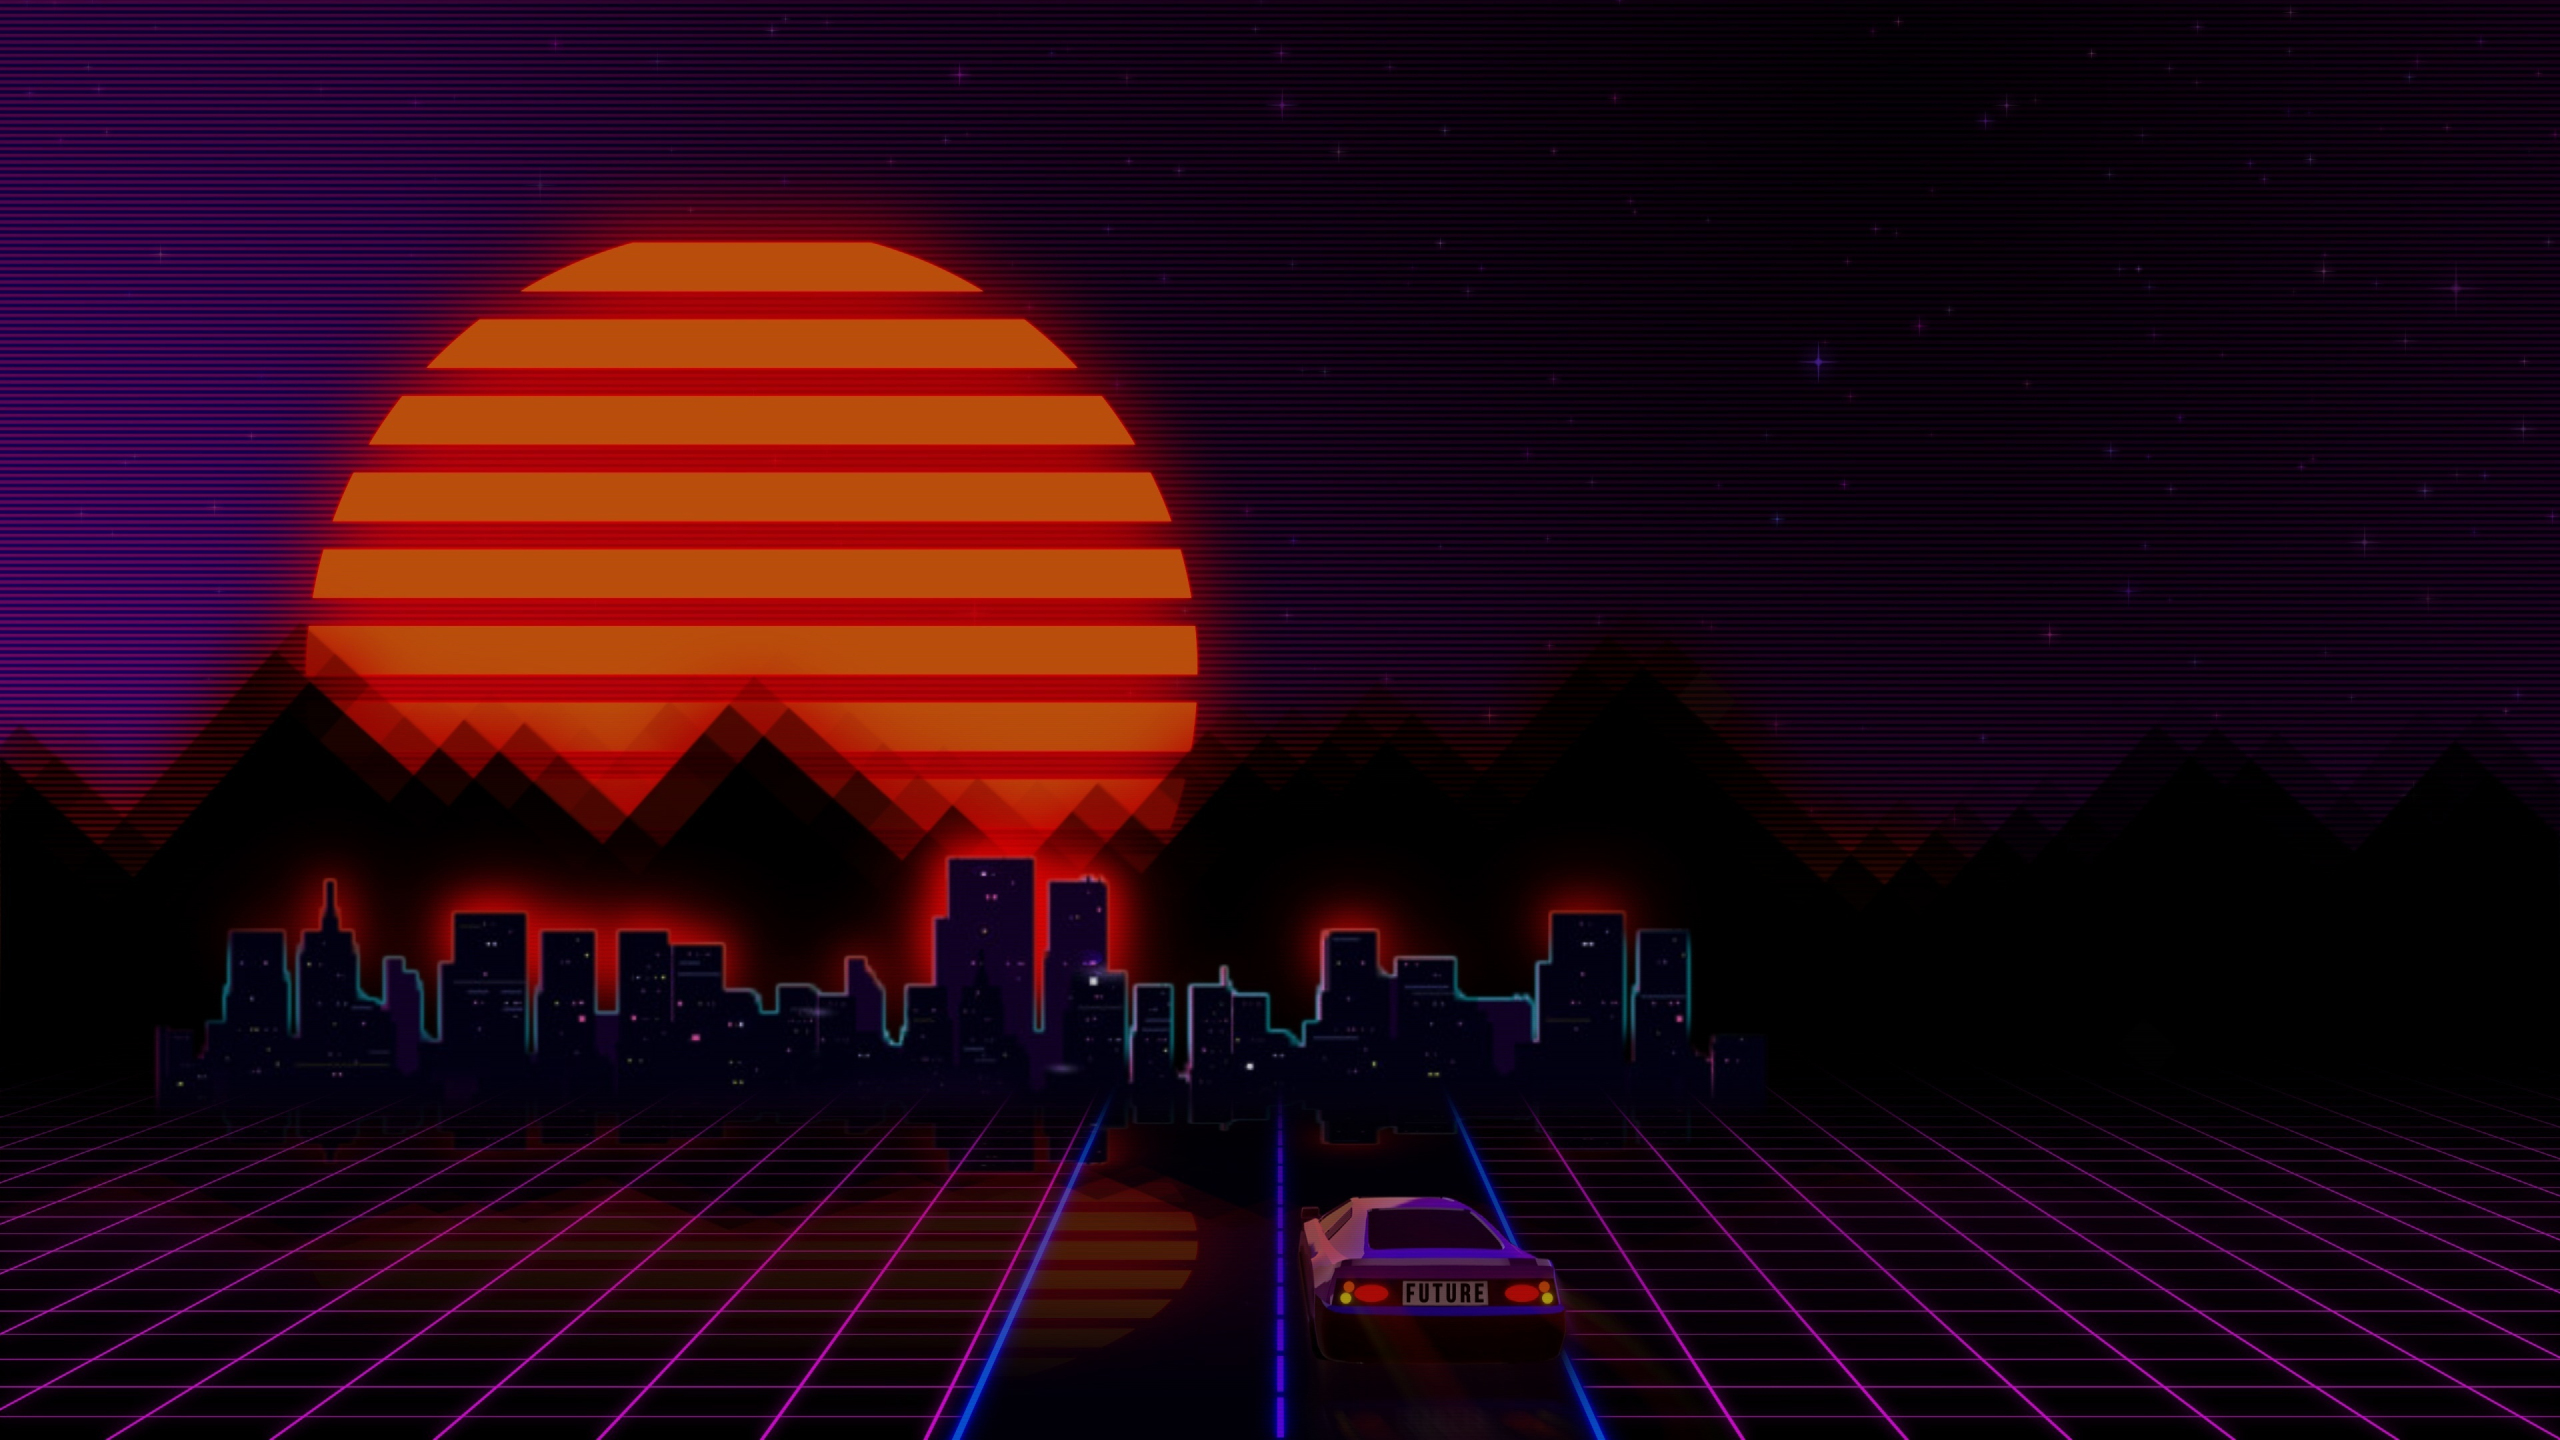 Download 2560x1440 Wallpaper Retro City Car Abstract Dual Wide Widescreen 16 9 Widescreen 2560x1440 Hd Image Background 7707